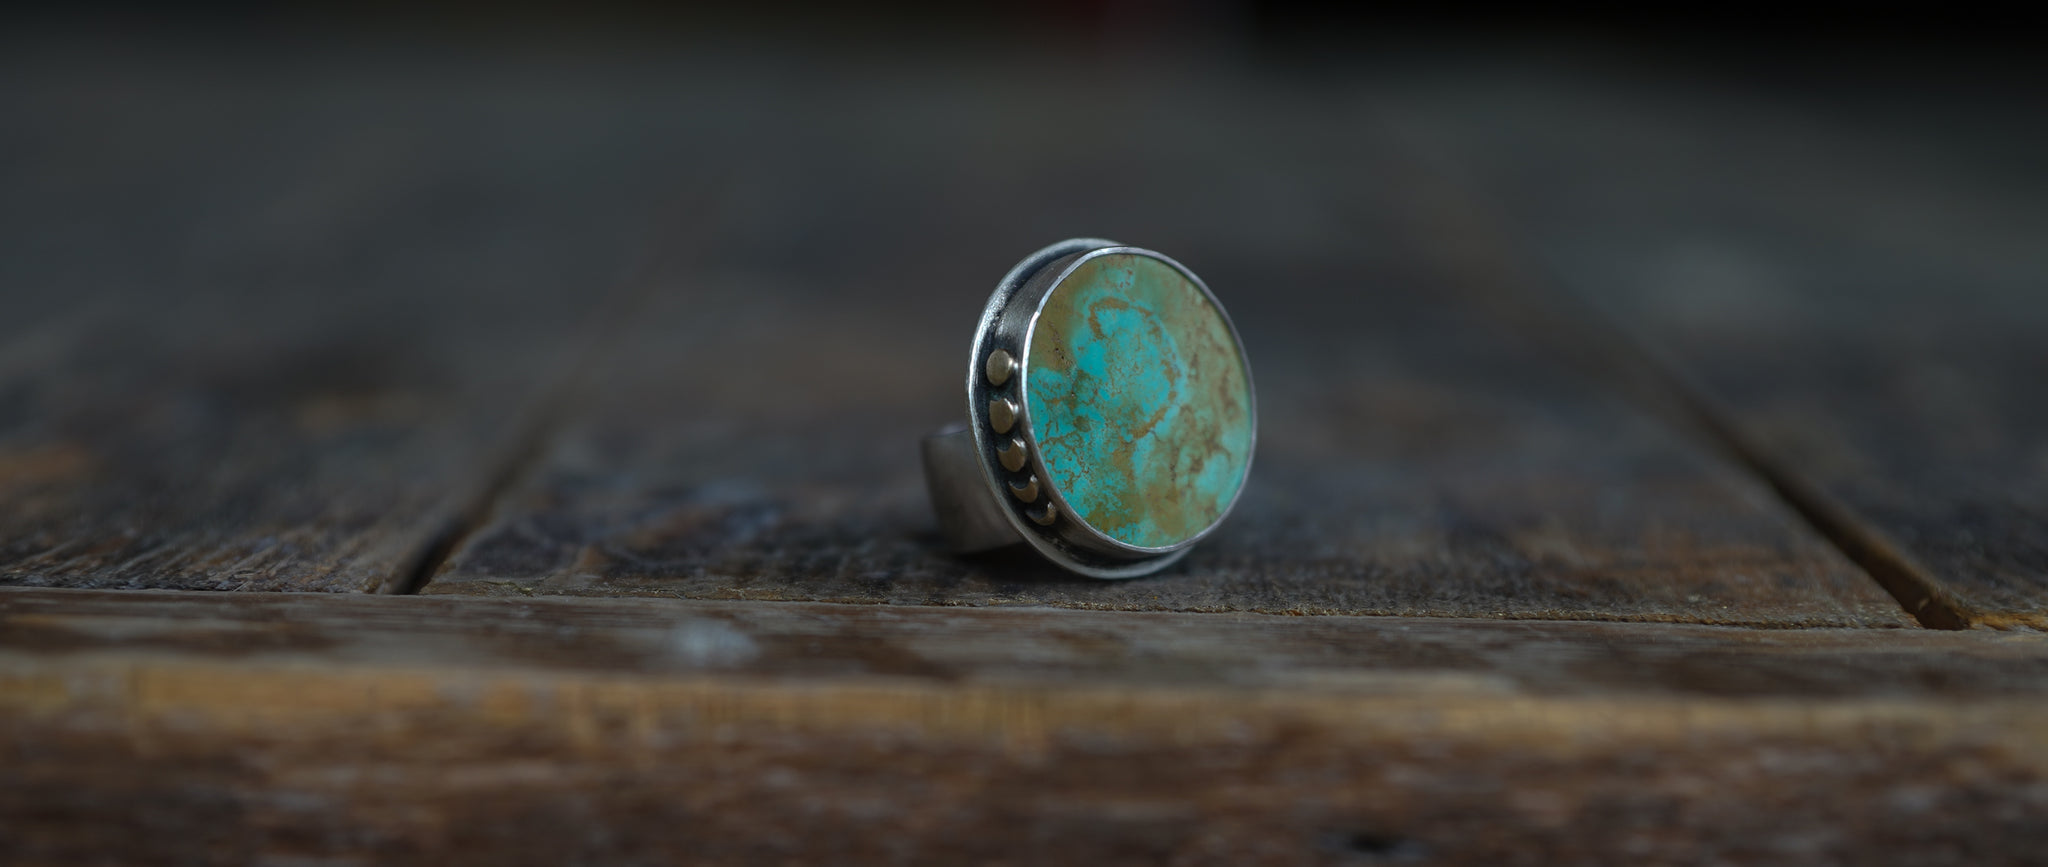 Solar System Ring  8  Circular cut of Turquoise + Reclaimed